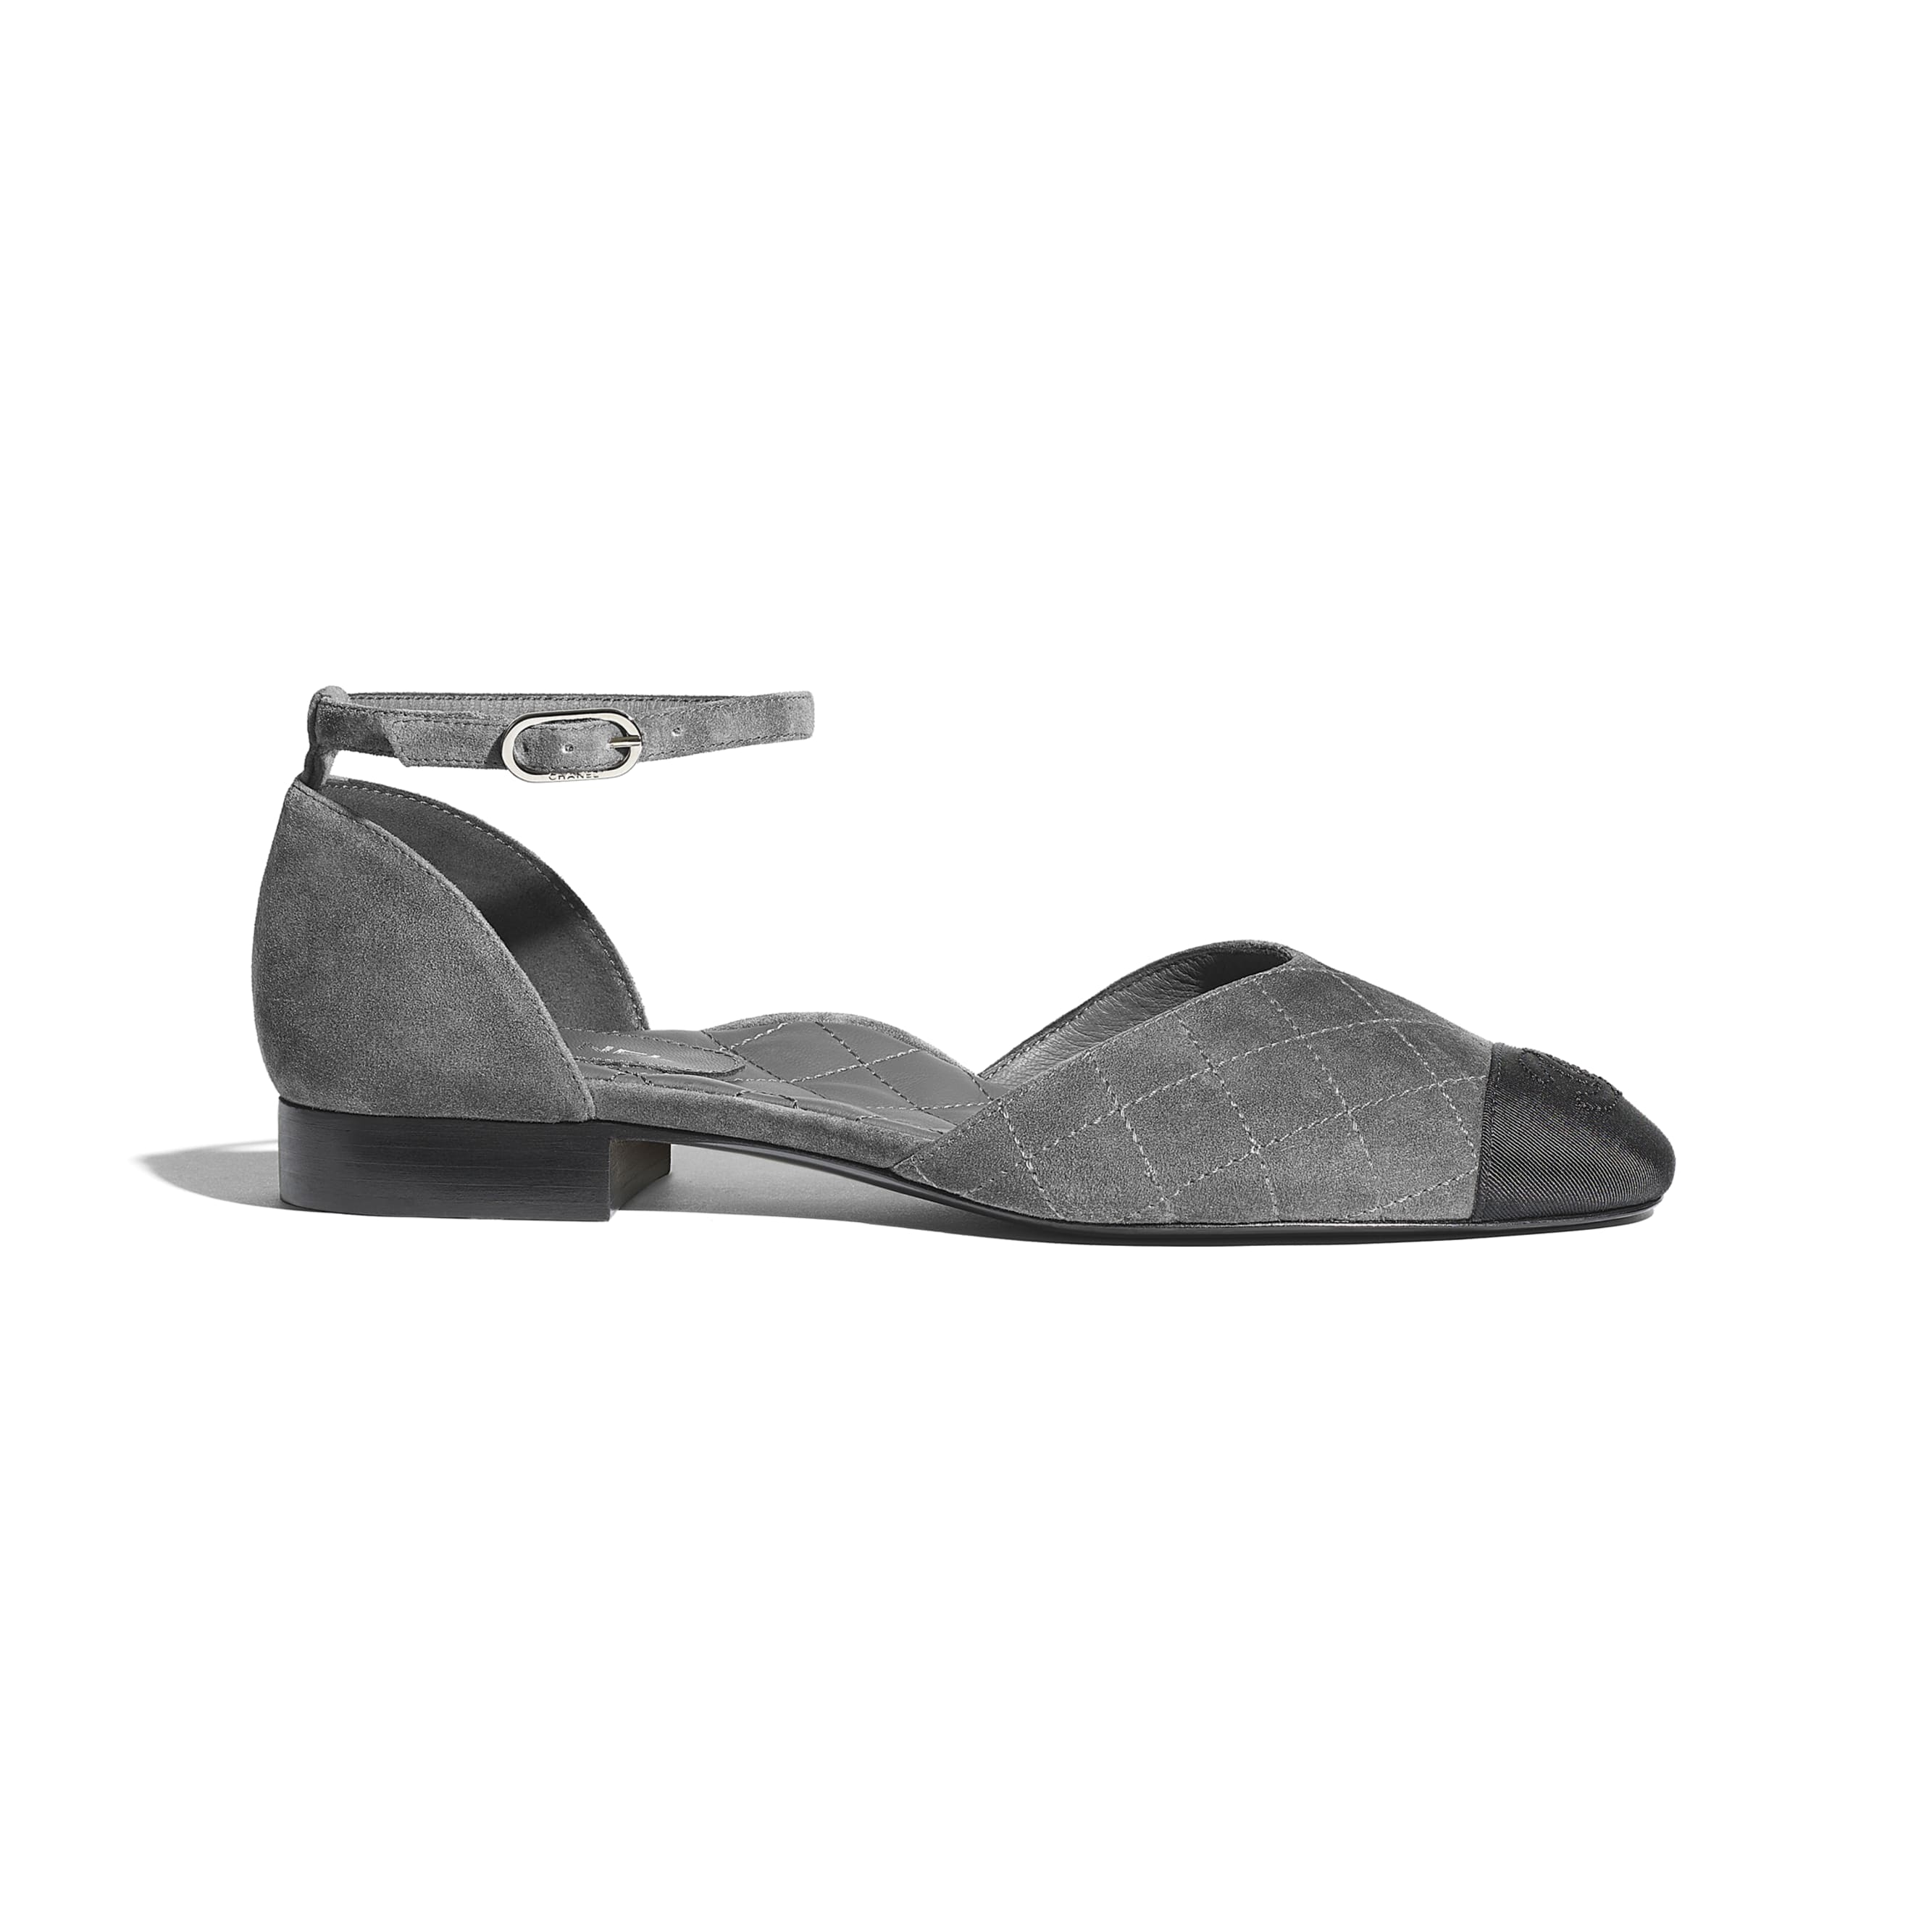 Mary Janes  - Grey & Black - Suede Calfskin & Grosgrain - CHANEL - Default view - see standard sized version